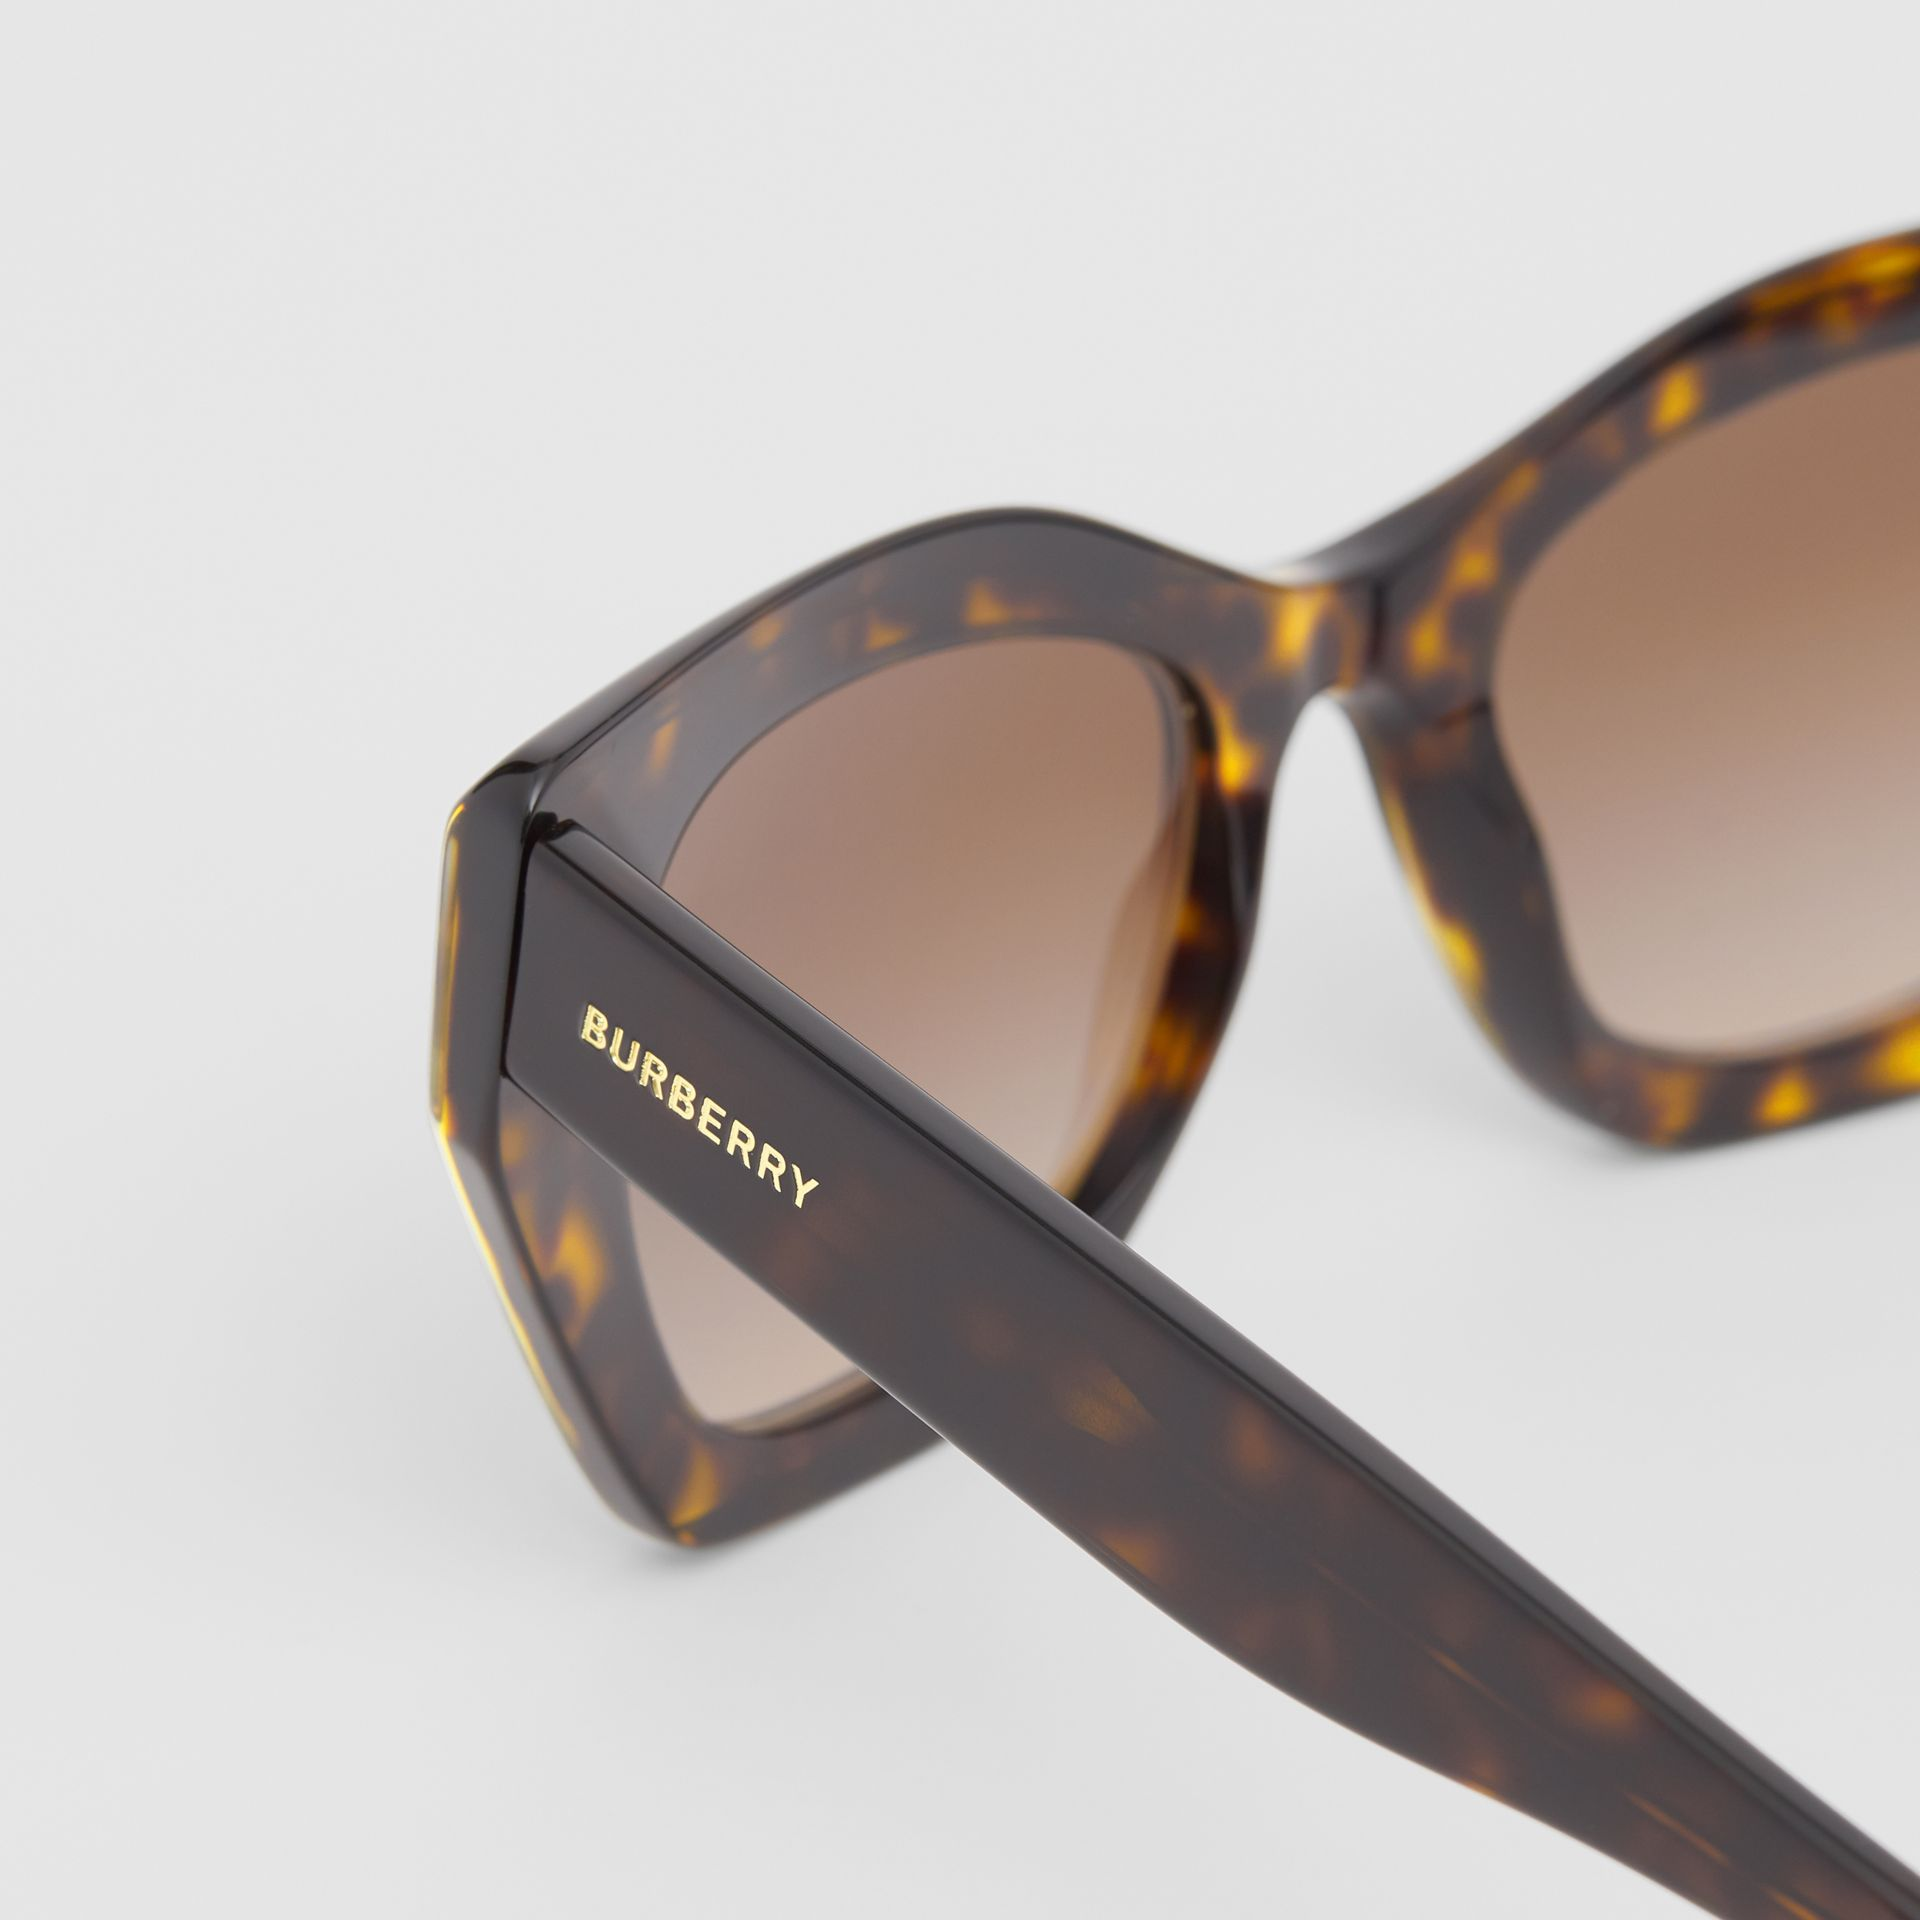 Butterfly Frame Sunglasses in Tortoiseshell - Women | Burberry Canada - gallery image 1